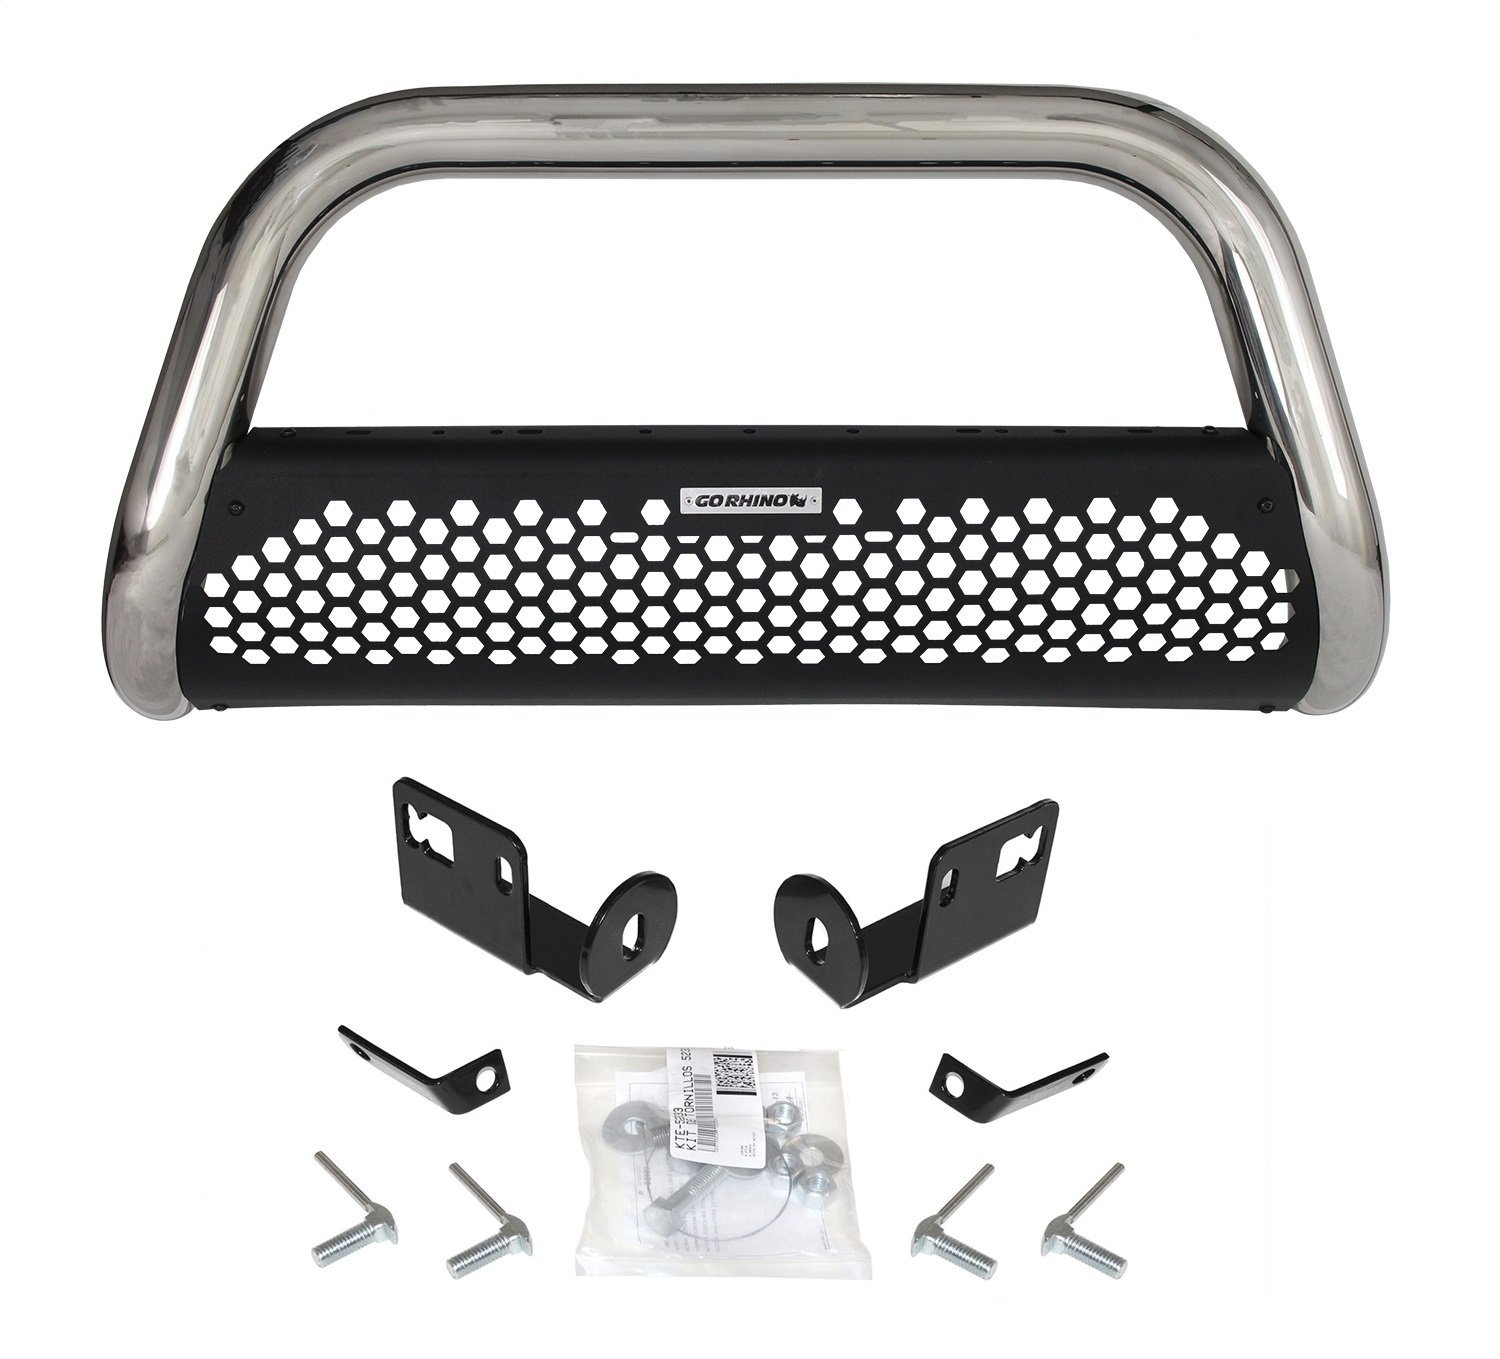 Go Rhino 55366PS Rhino Charger RC2 Bull Bar Polished Stainless Front Mounting Brackets Sold Separately Rhino Charger RC2 Bull Bar